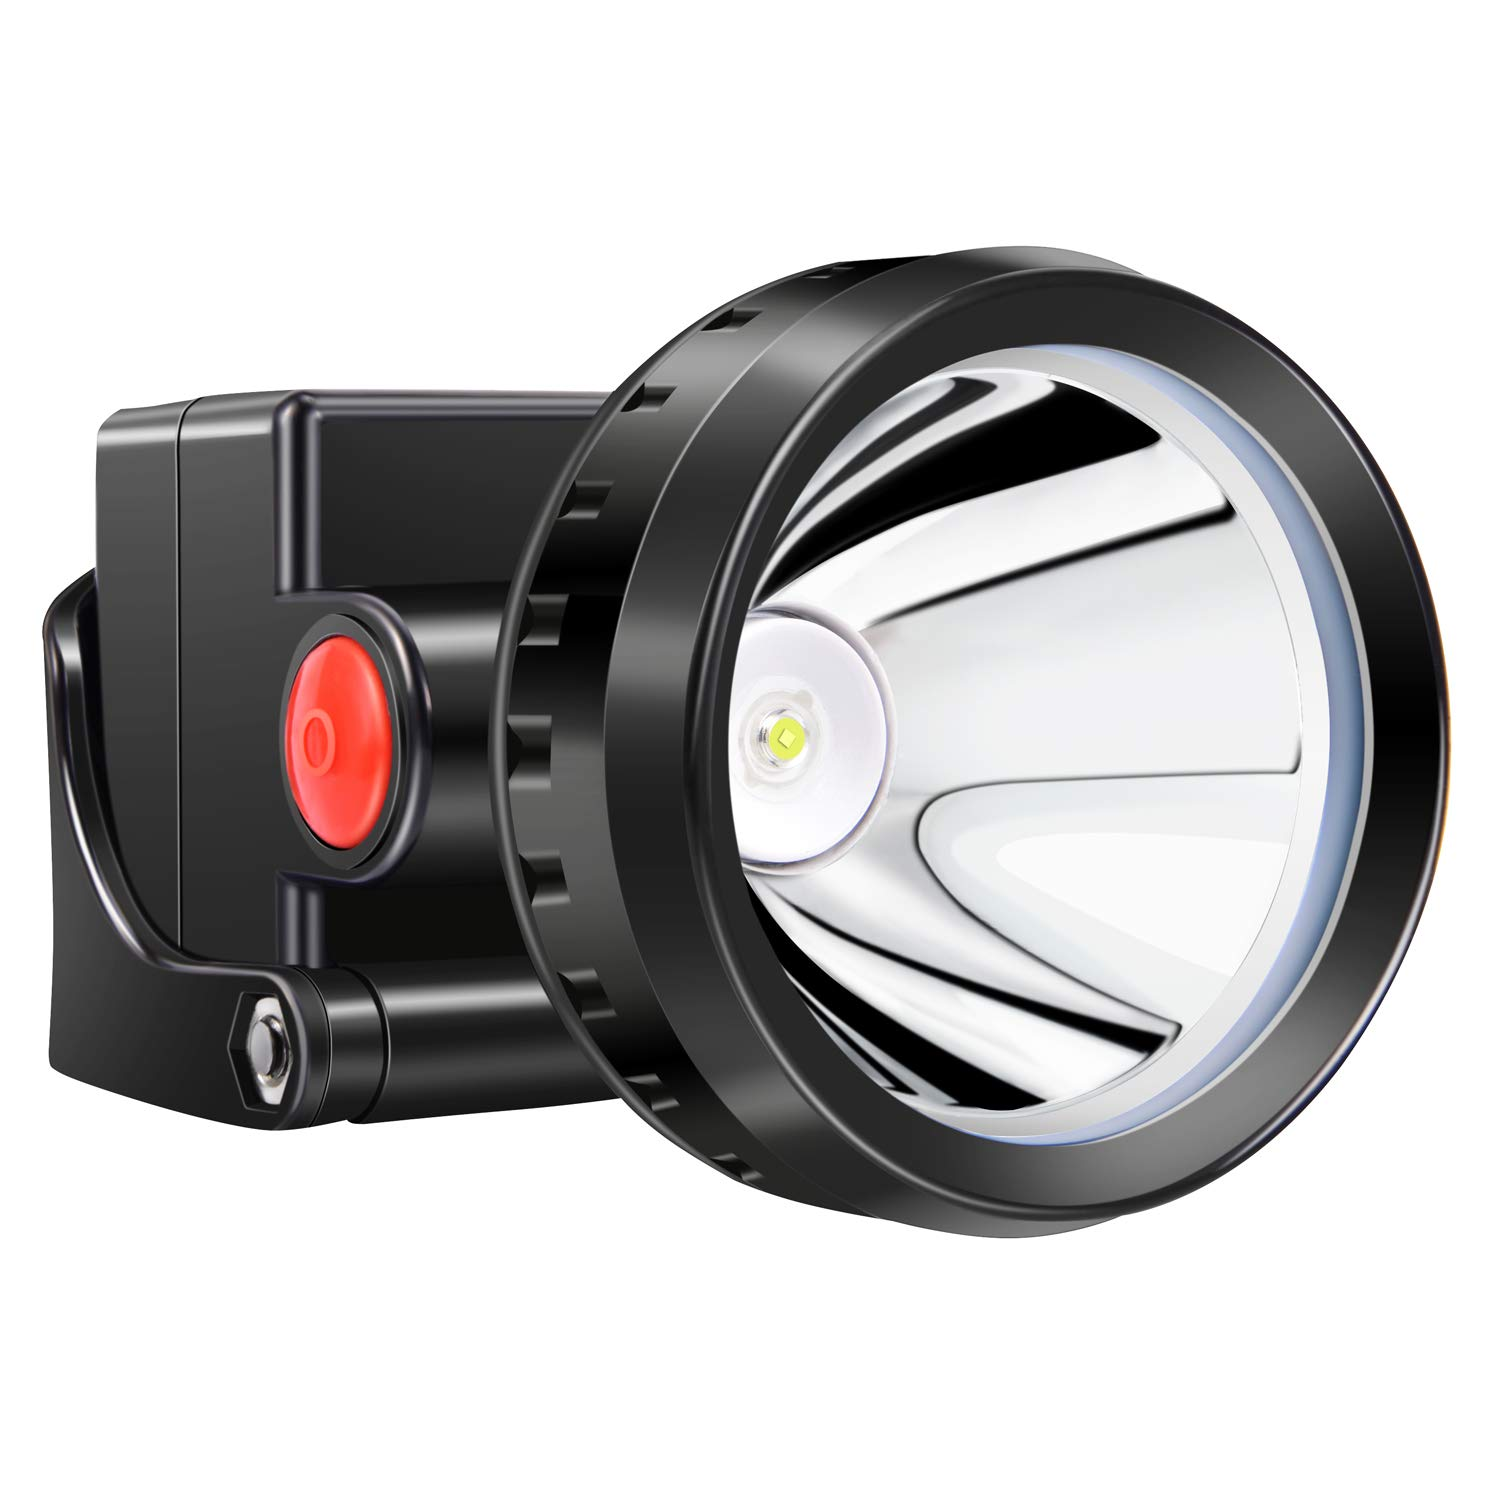 Kohree 3W KL2.8LM LED Miner Headlight Lamp 2000/15000 Lux Mining Light Cap Lamp Explosion Shock Proof-Perfect for Camping/Fishing/Hiking